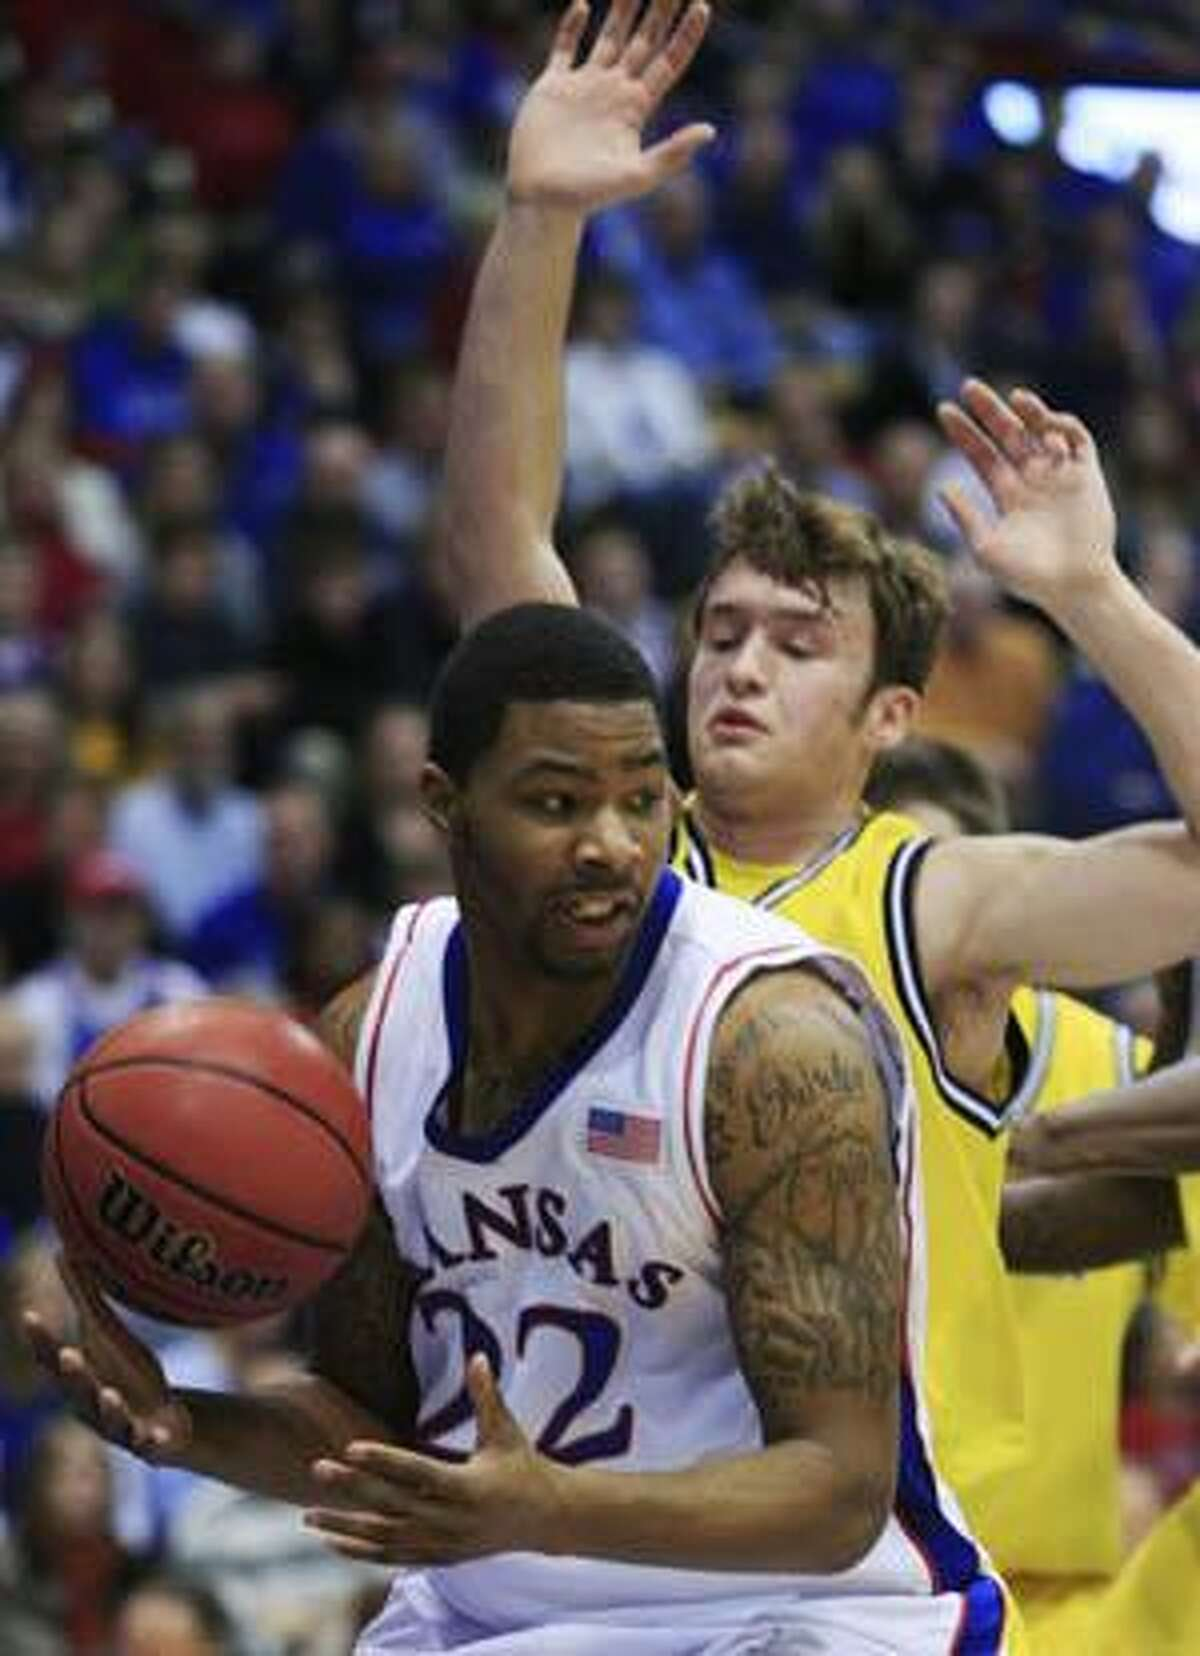 Kansas forward Marcus Morris (22) is defended by Michigan guard Zack Novak during the first half Saturday in Lawrence, Kan. Morris scored 23 points to lead Kansas to a 75-64 win over Michigan.